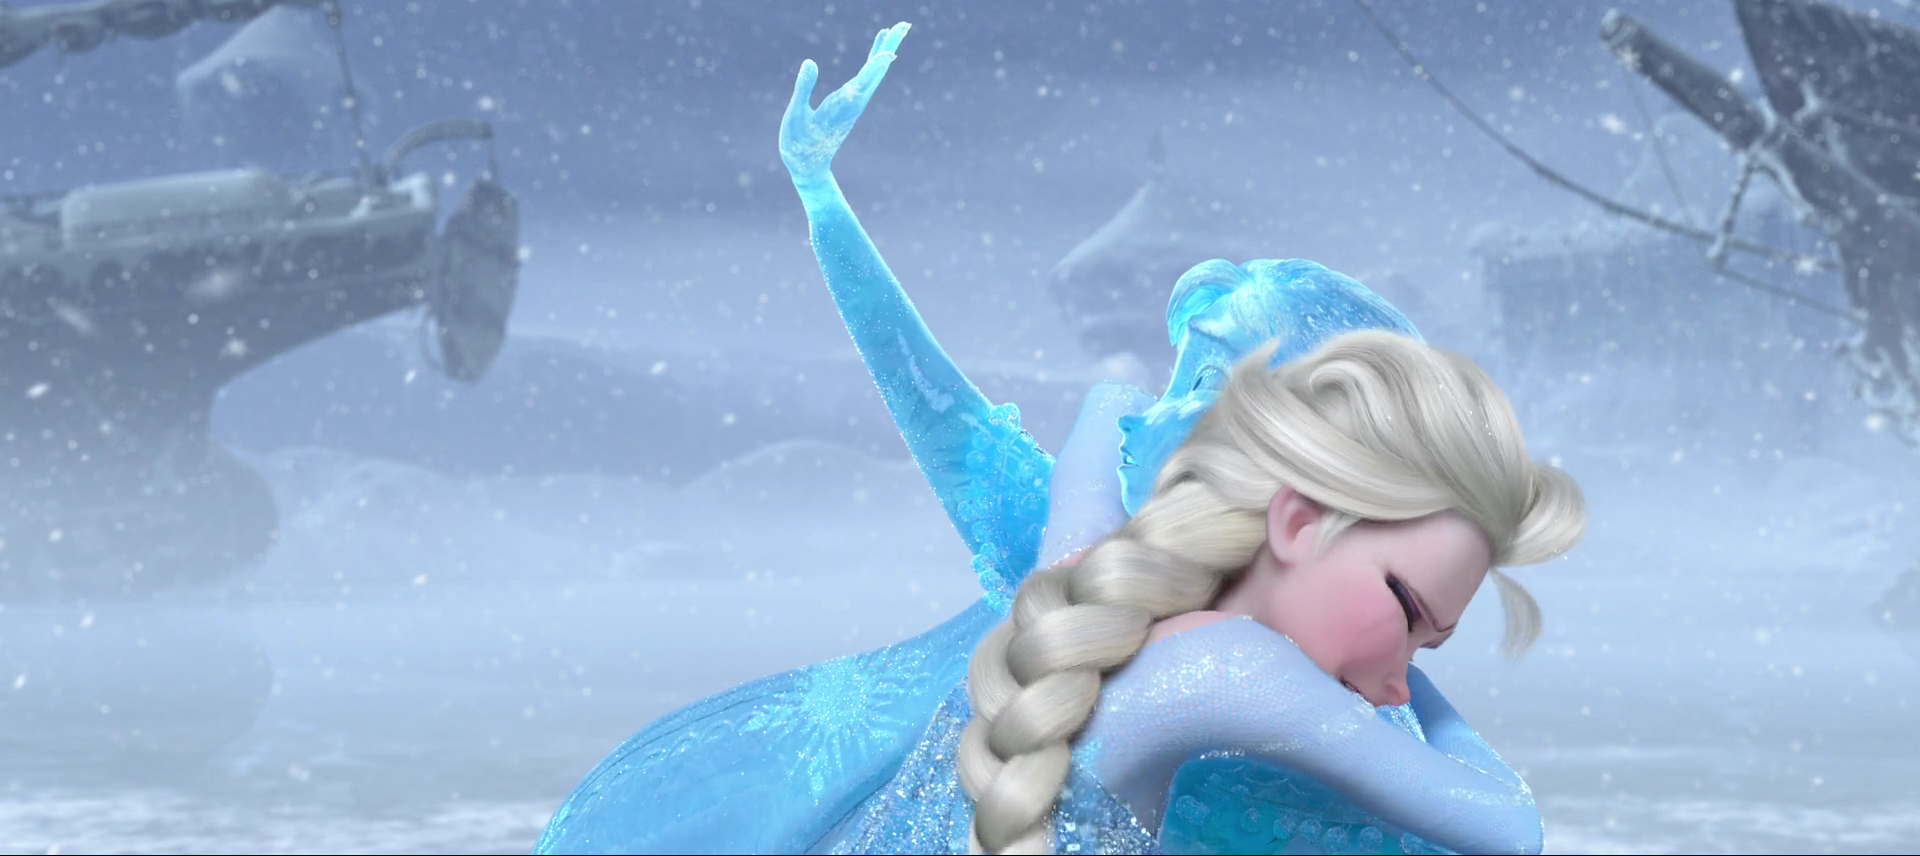 Litias Blog Elsa The Snow Queen